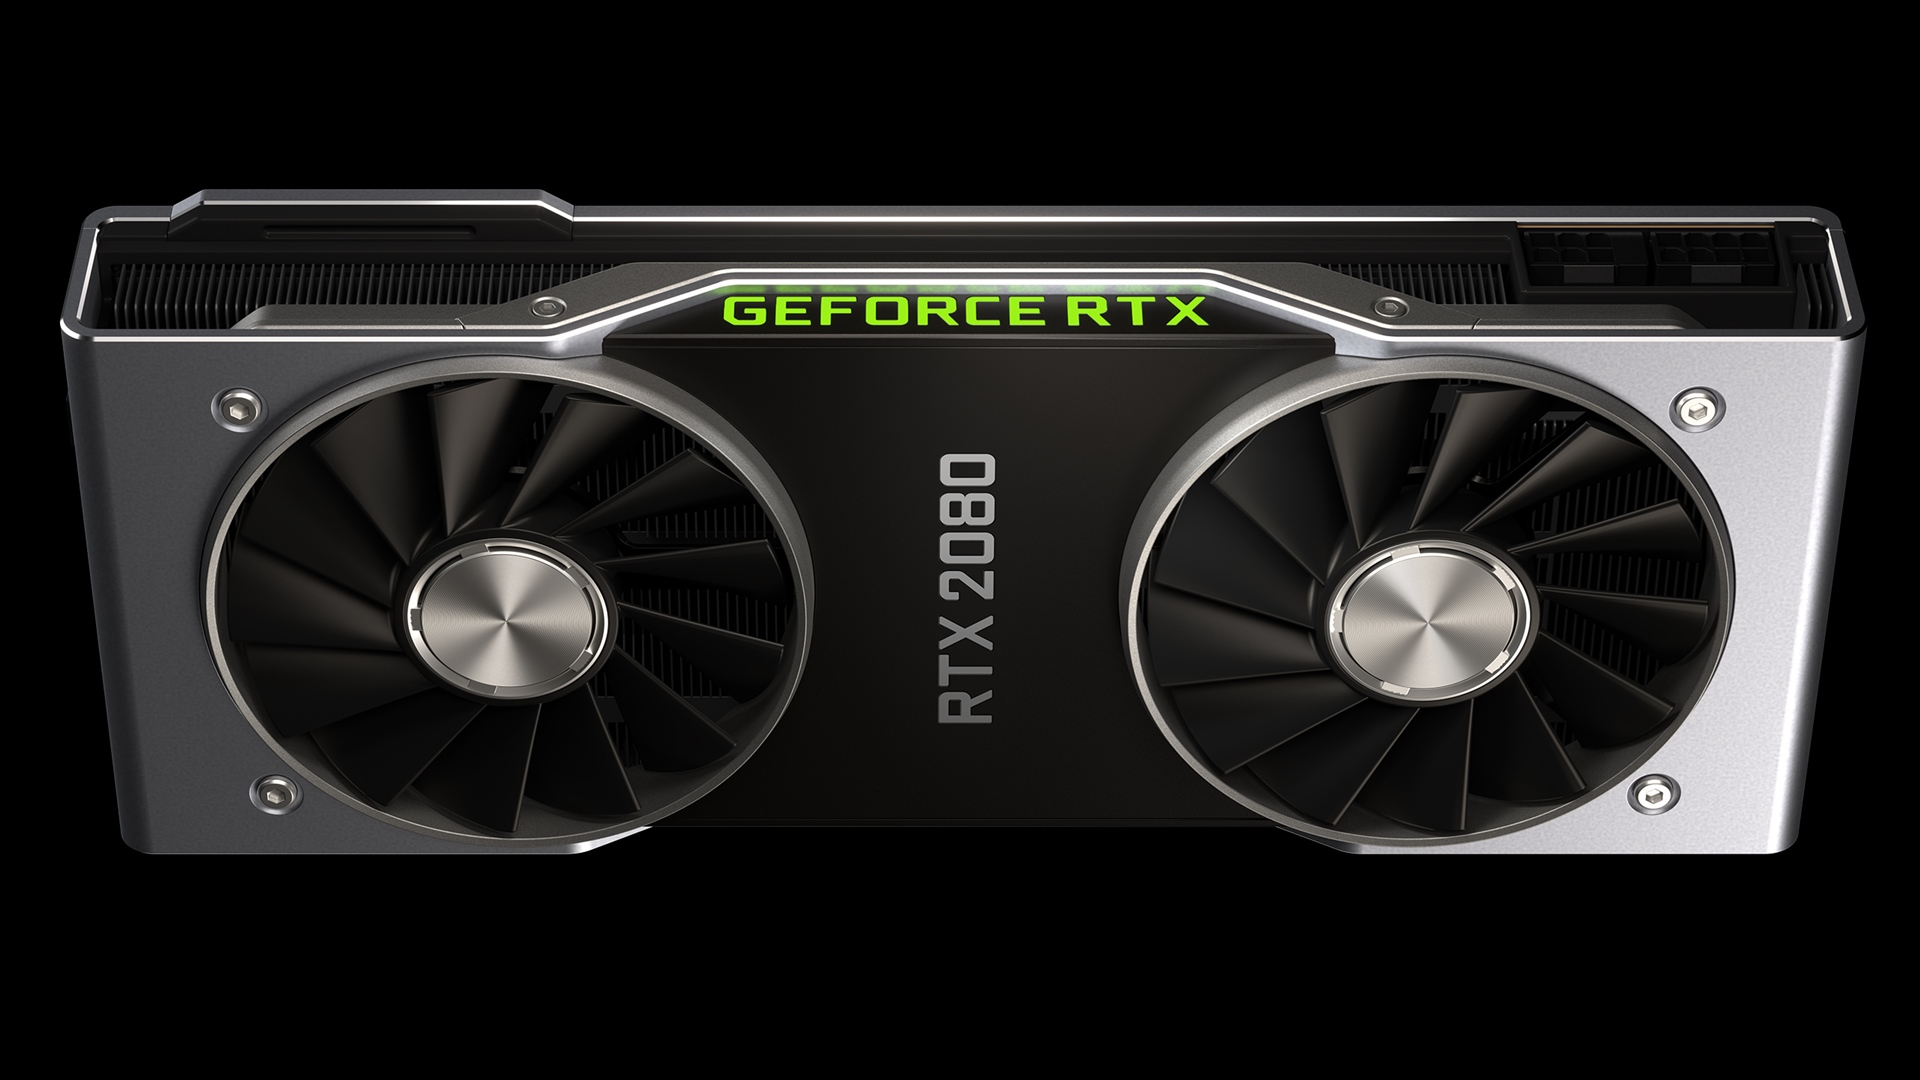 Nvidia's GPU and monitor tech will win you that battle royale match